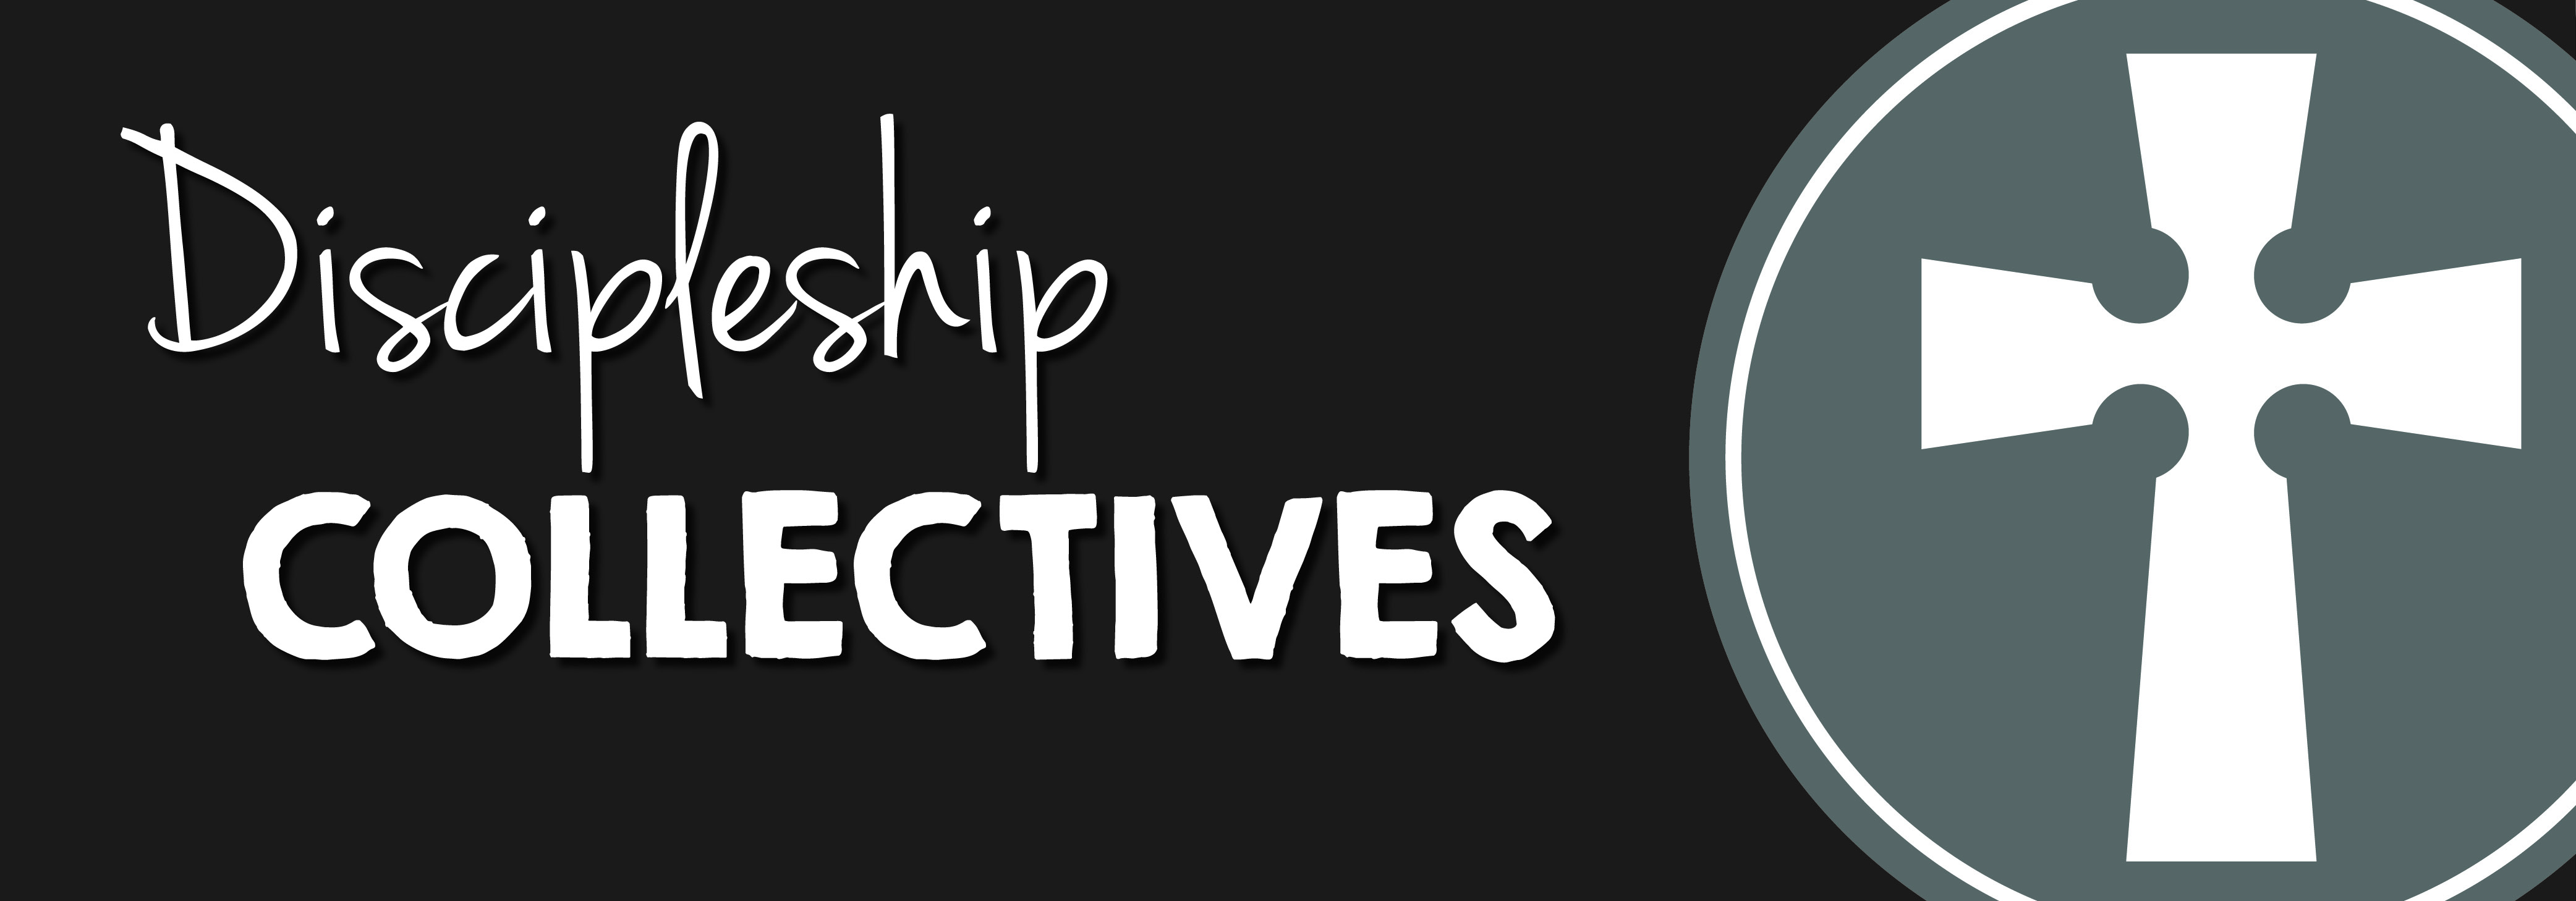 Discipleship Collectives April 2018